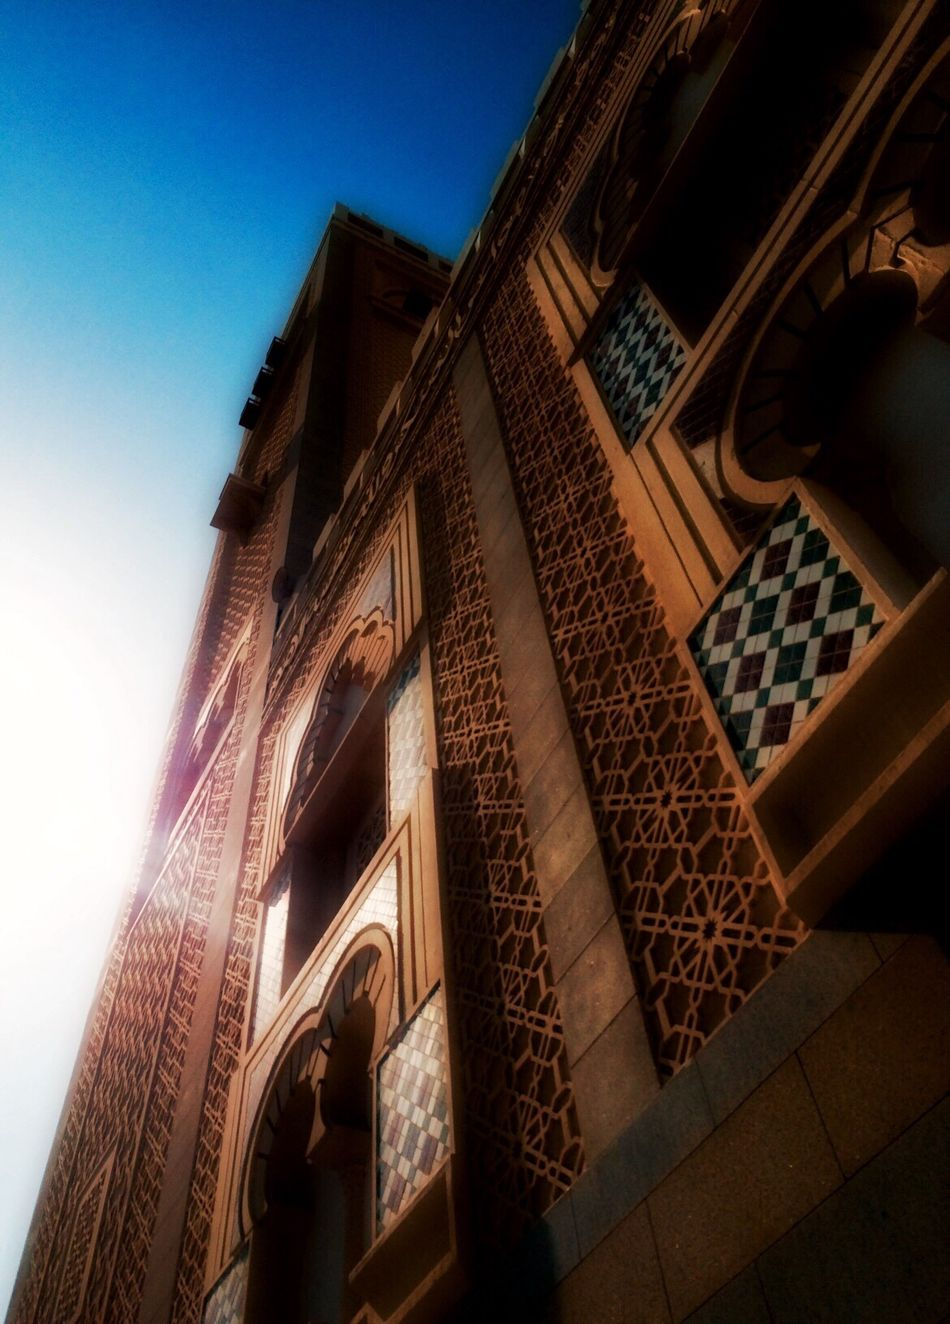 Low Angle View Built Structure Building Exterior Clear Sky Day Mosque Afternoon Relections Light And Shadow Light Reflection Sunny Sun From My Point Of View Sky Outdoors No People EyeEm Eye4photography  EyeEmNewHere Architecture Seaside Streetphotography Building Backgrounds